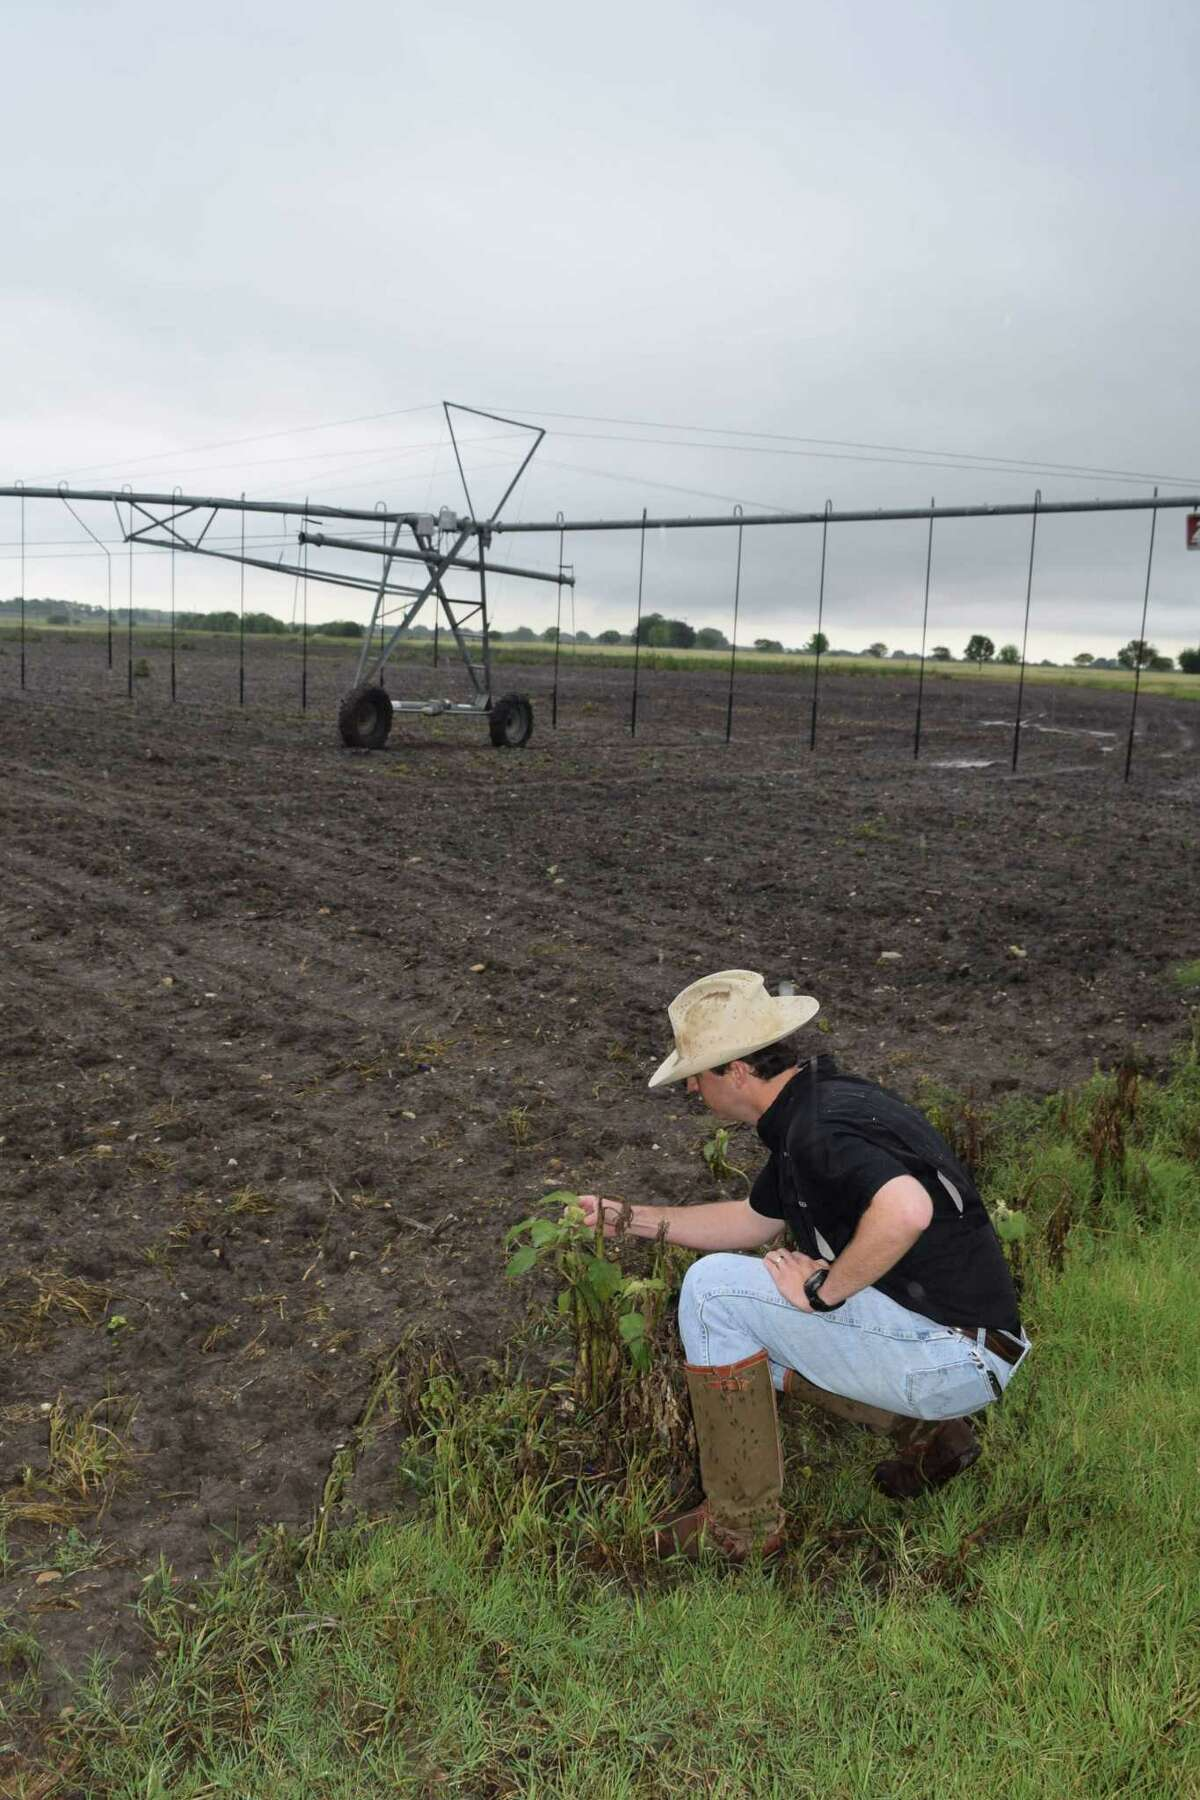 A dove-attracting sunflower like the one's planted in this field that will be a bird magnet this fall is checked out by Brent Conger, managing partner of Paloma Pachanga Ranch, who has doubled his operation by taking over management of the Nooner Ranch day-leases.